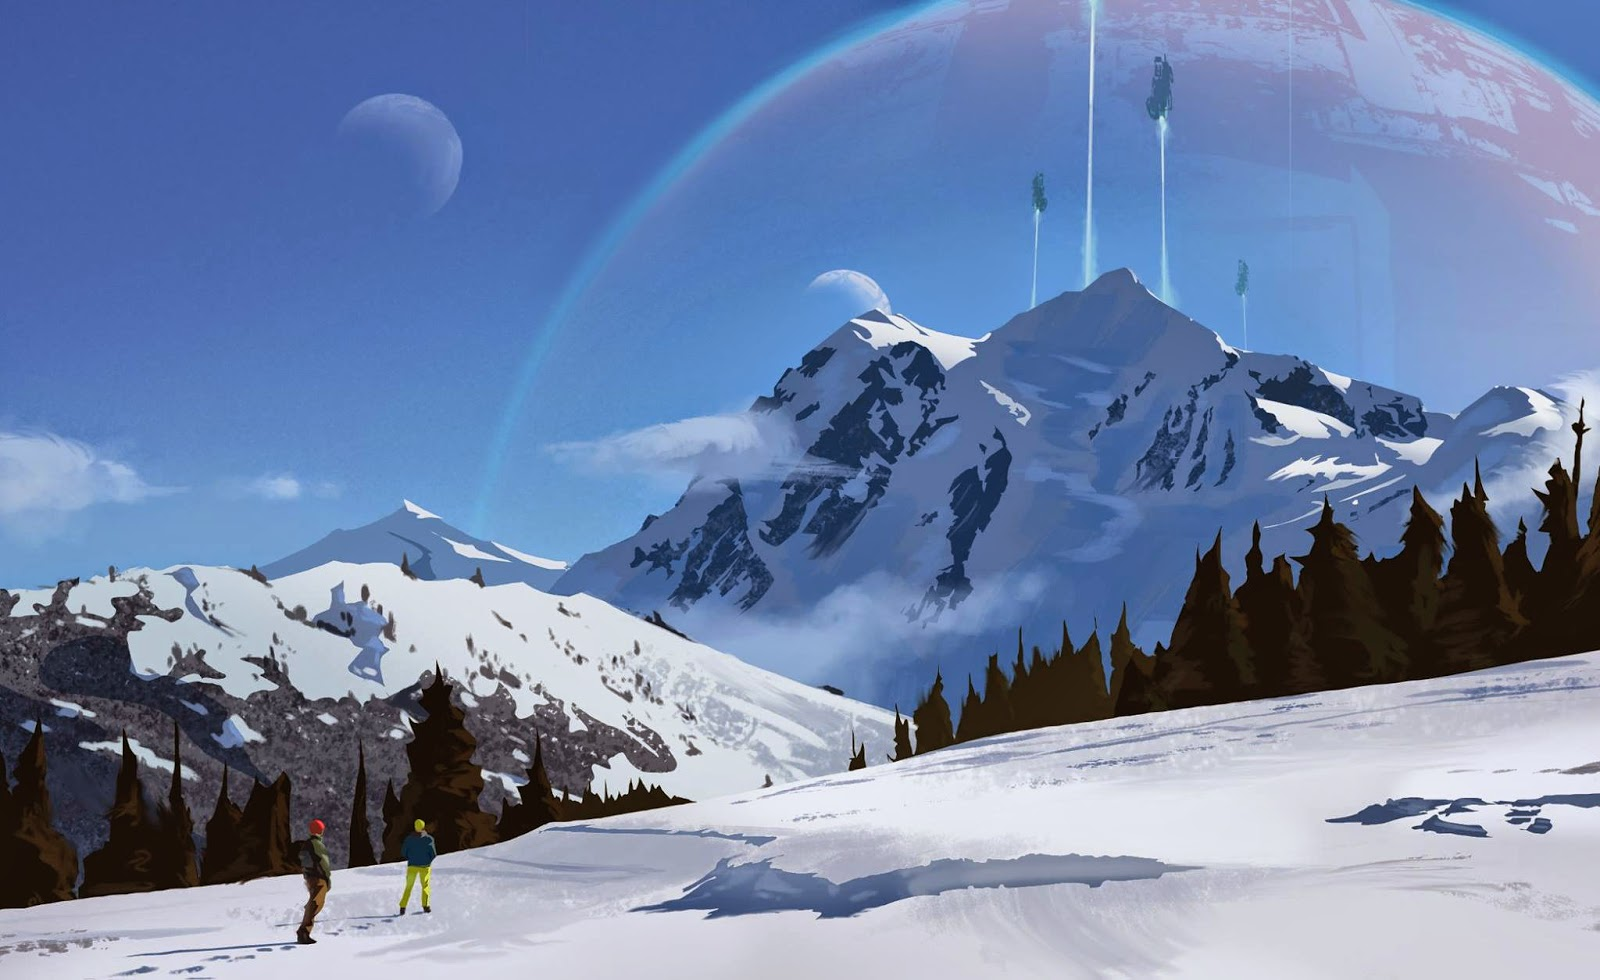 This is a painting I did based on a cell phone photo I took while I was on a snowboarding trip to Crystal Mountain.  Including the spaceships and that much-too-close planet.